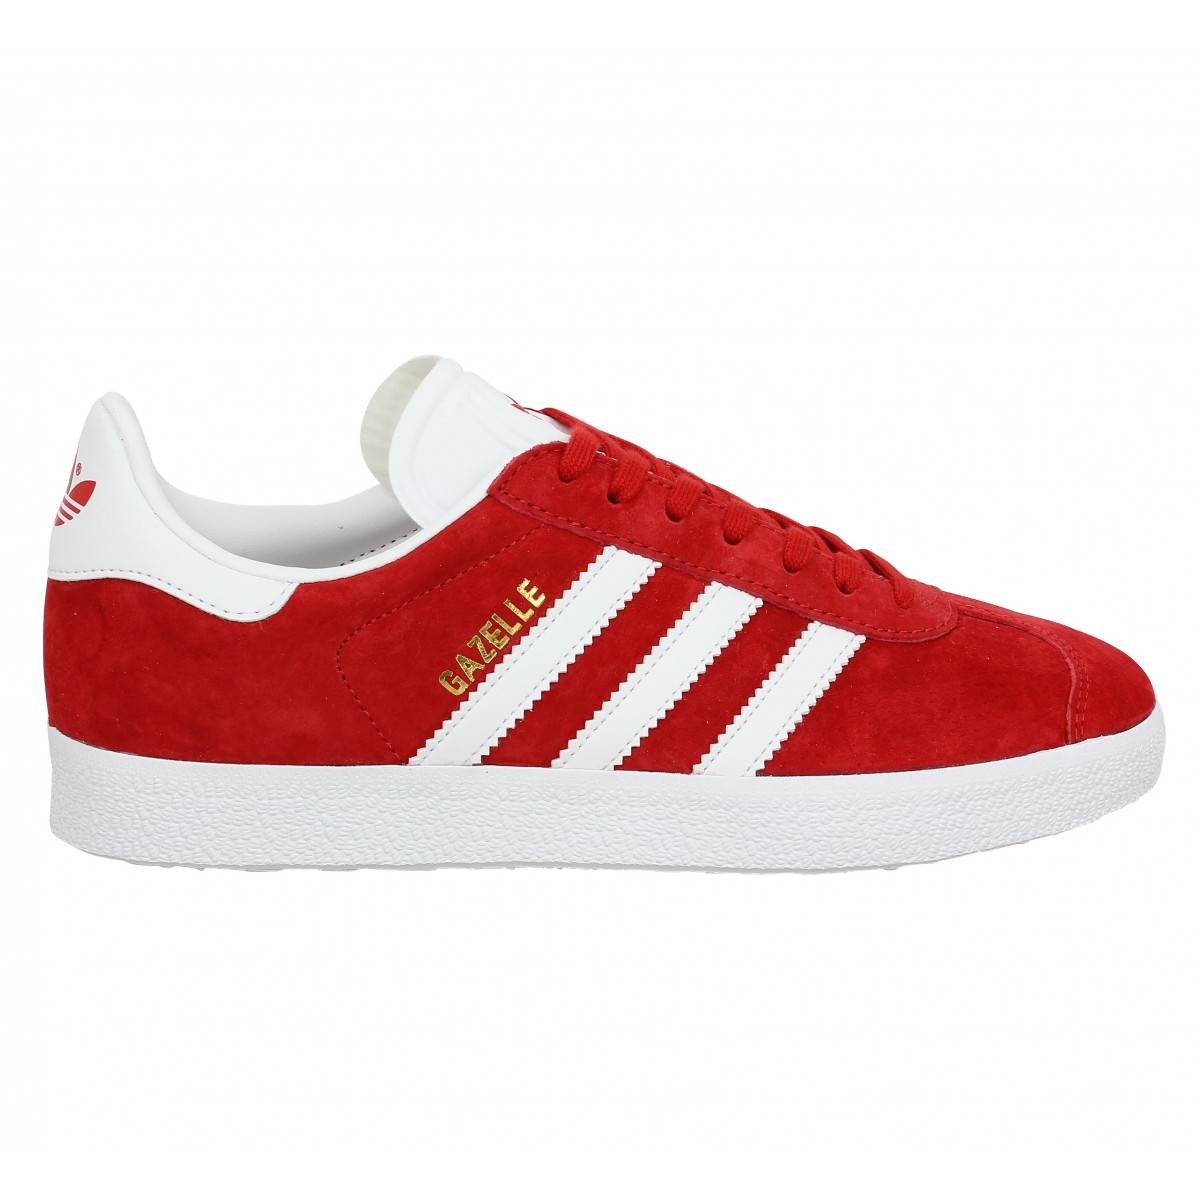 adidas gazelle femme rouge adidas gazelle femme rouge. Black Bedroom Furniture Sets. Home Design Ideas